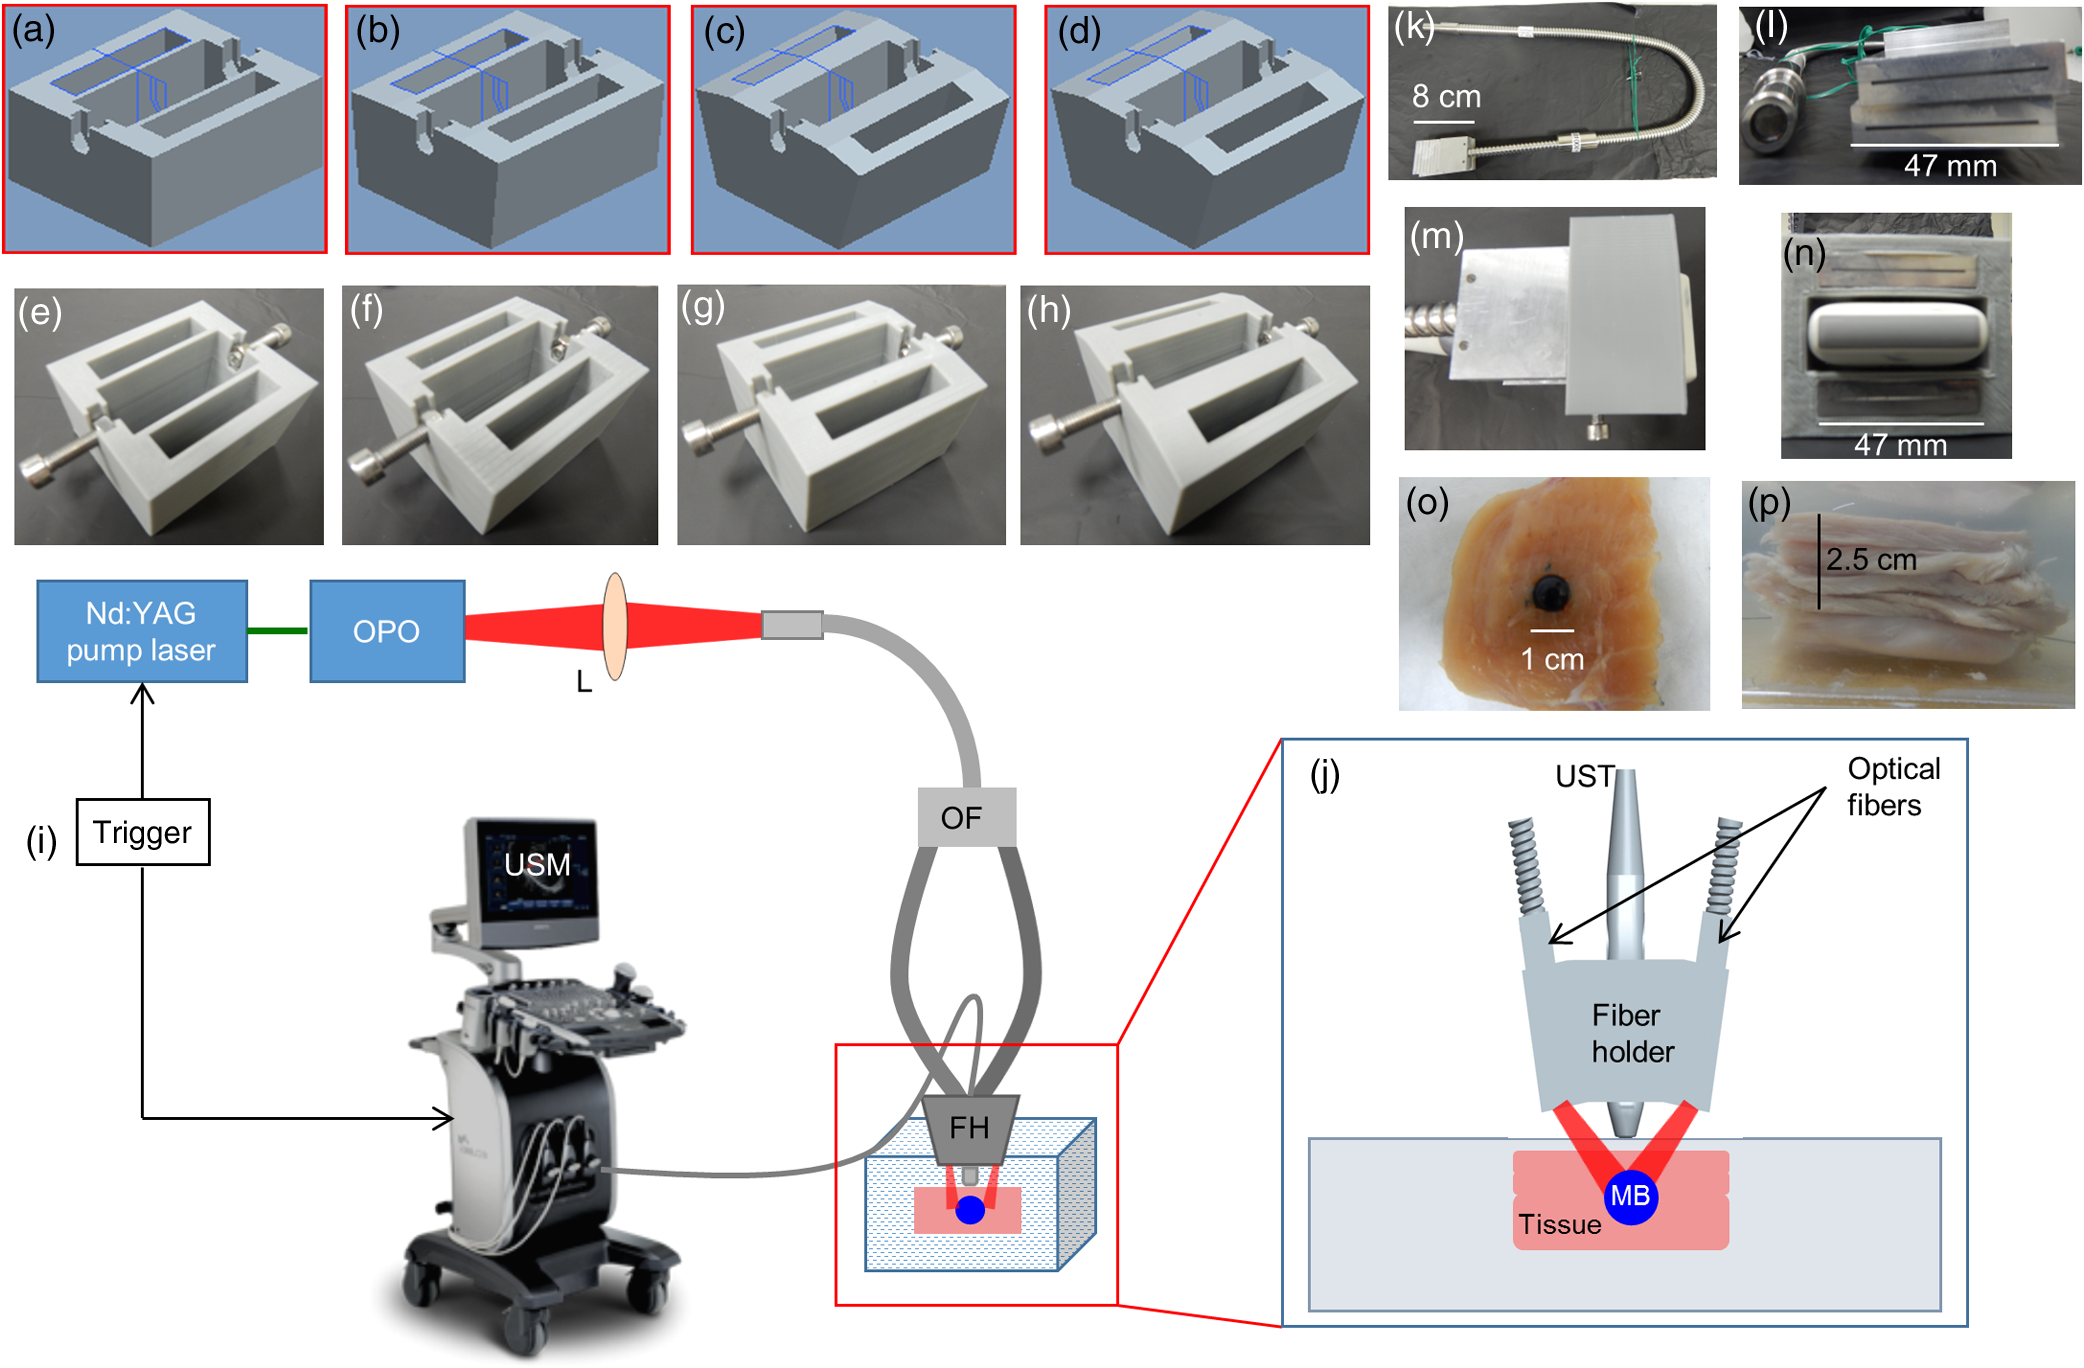 Optimizing light delivery through fiber bundle in photoacoustic